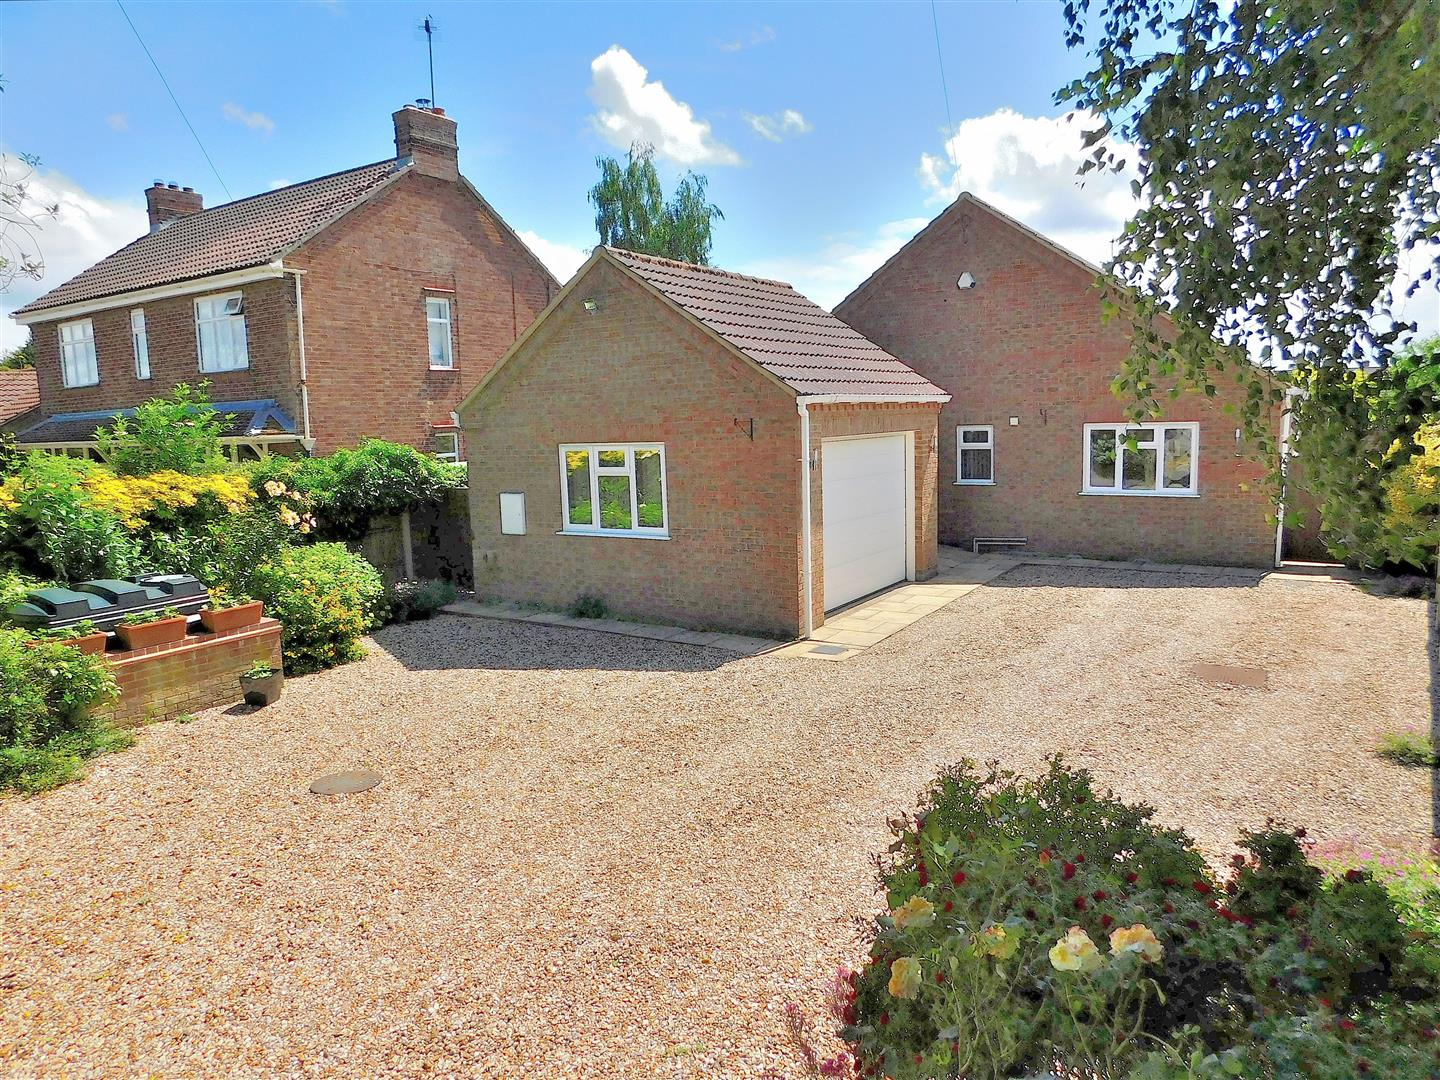 4 bed detached bungalow for sale in Popes Lane, King's Lynn - Property Image 1